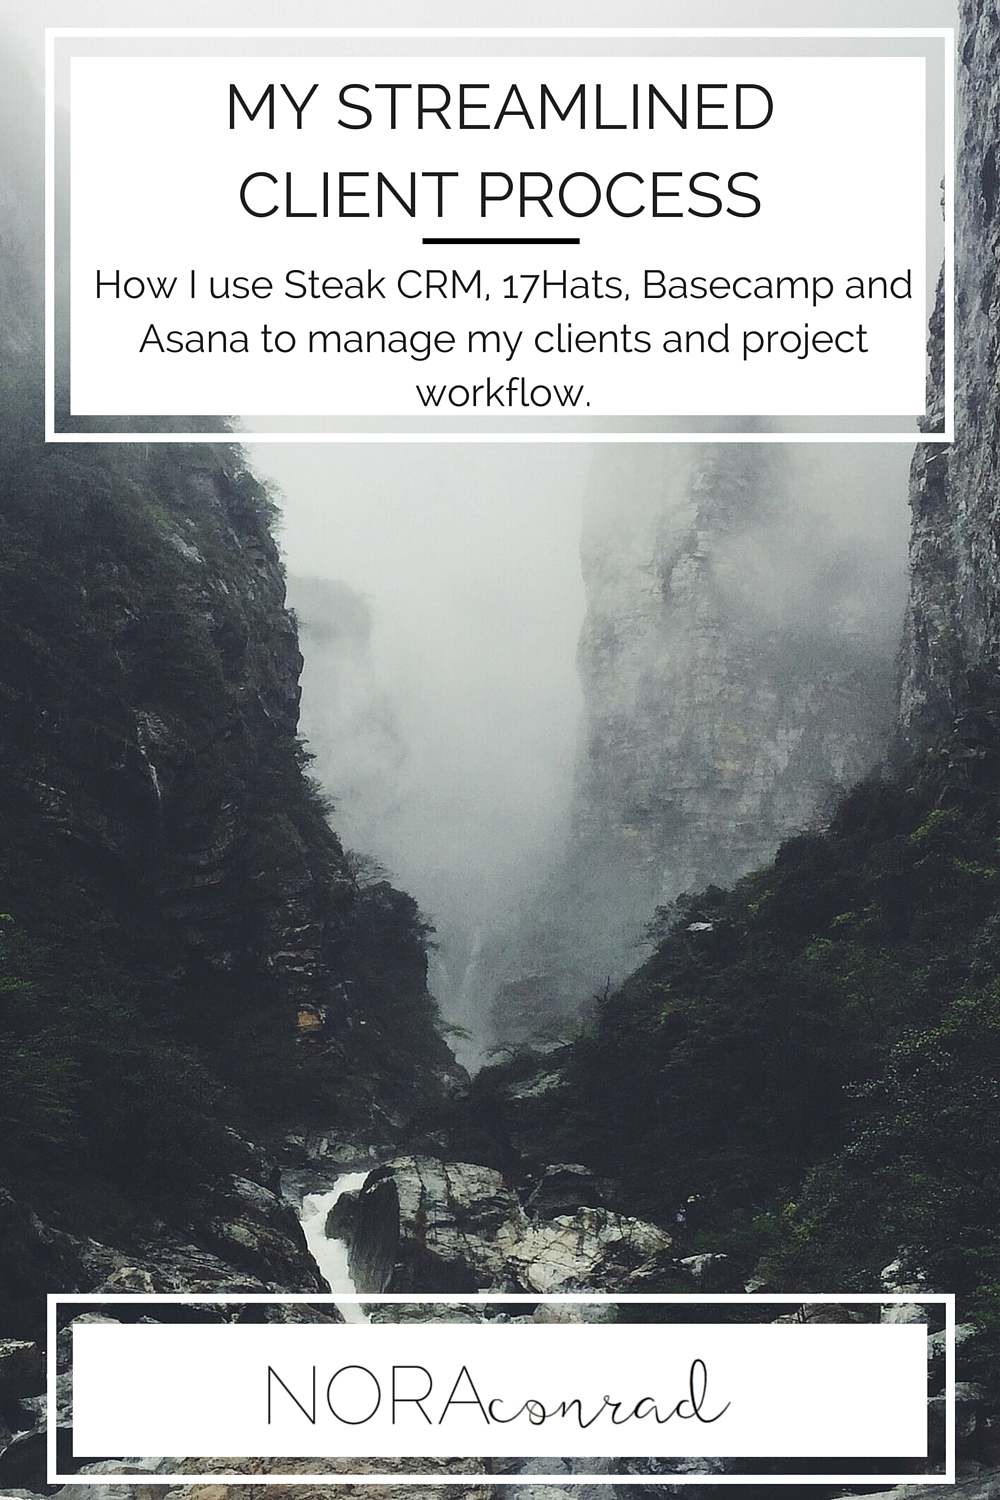 How to simplify your client process using online tools. Less emails = less stress. Trust me on this one. Use 17Hats and Streak CRM to streamline your process.